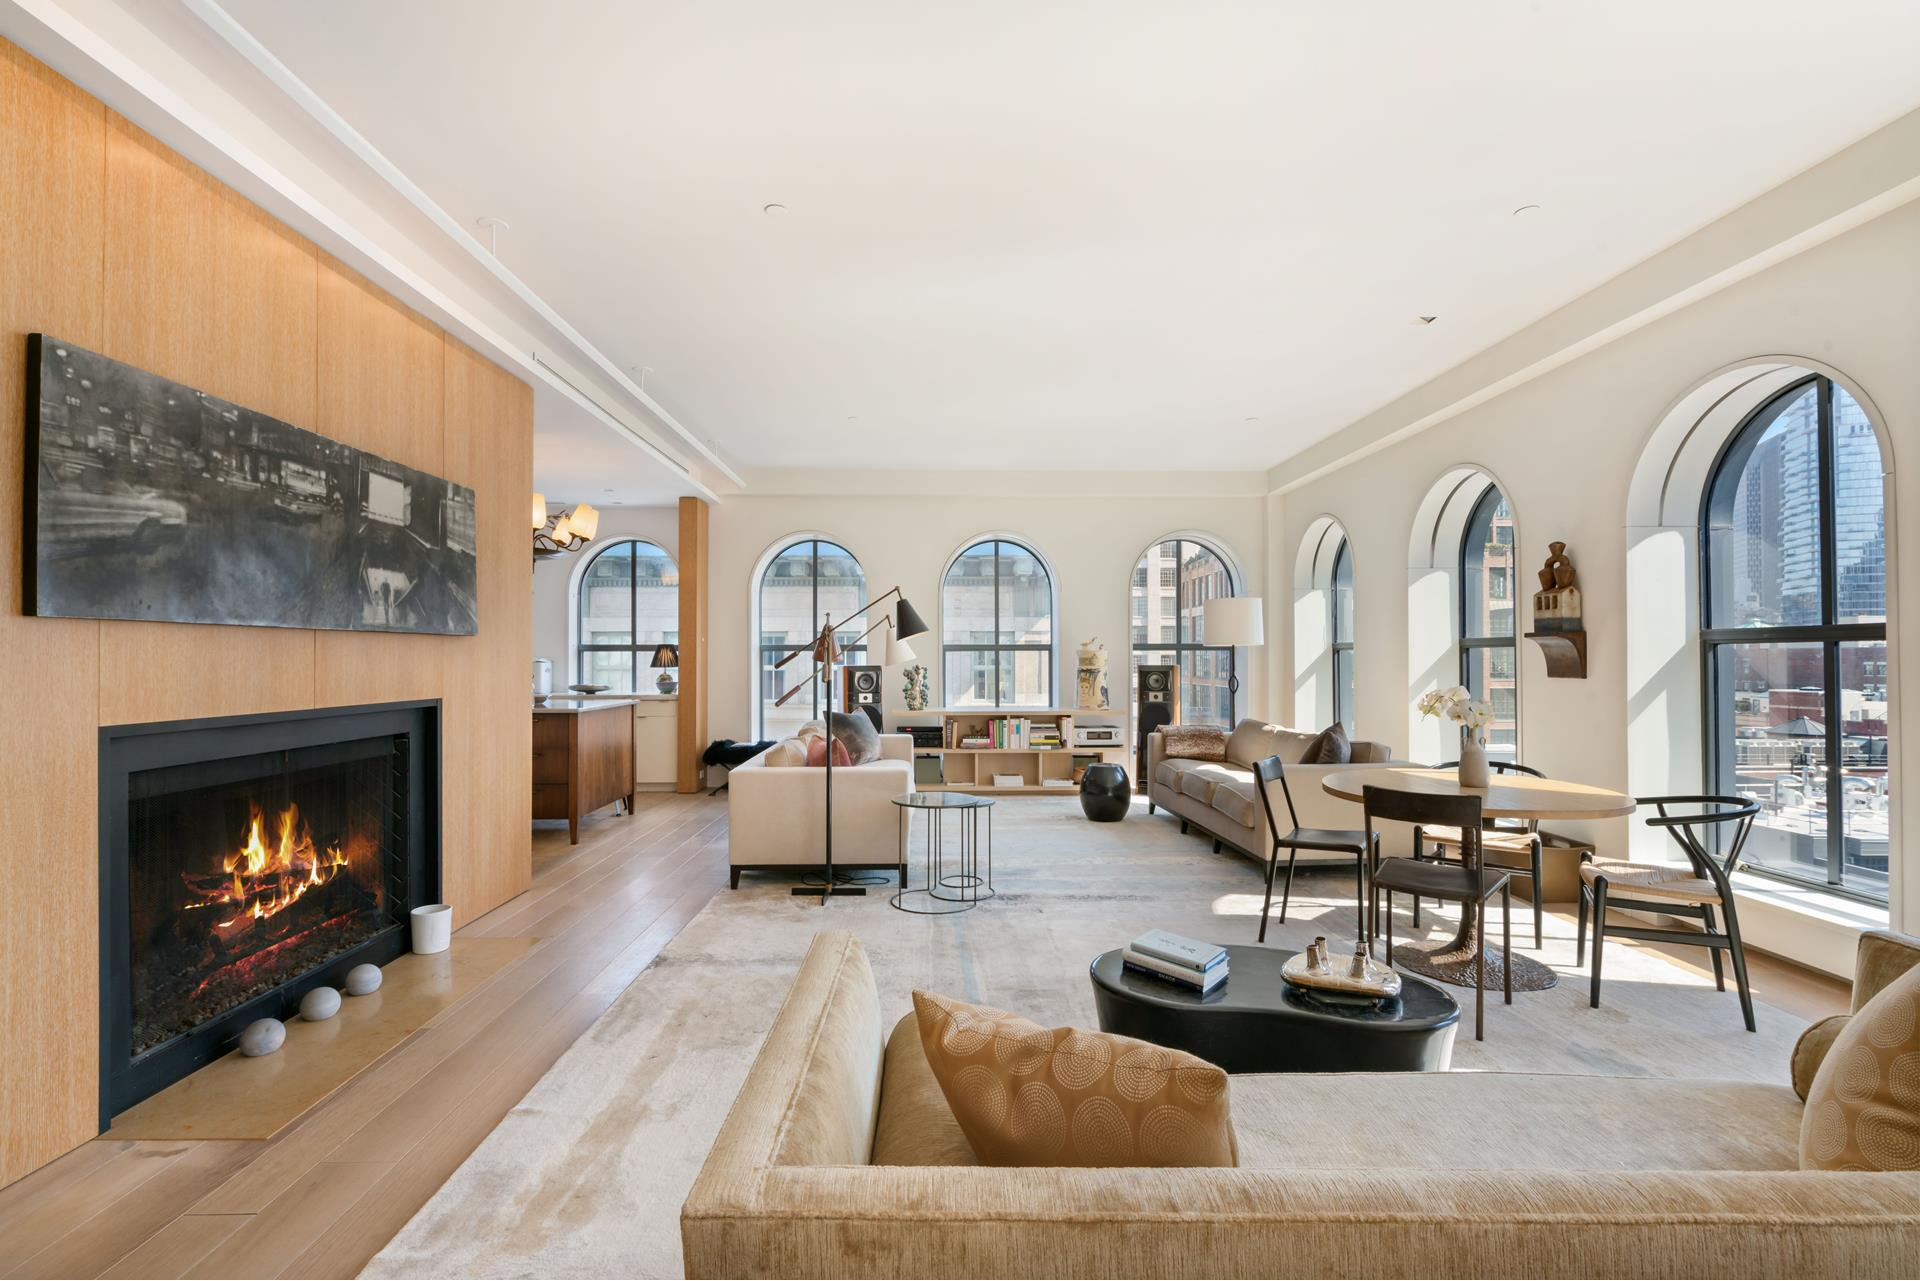 """Welcome to 408 Greenwich Street - Steven Harris Architect designed home of elegance and sophistication.    Offered for the first time in TriBeCa's Northern Historic District, moments from the Hudson River Park, this extraordinary Penthouse is a rare combination of space, light, dramatic views and excellence in design. This residence offers two exceptional full floors   including one of the most beautifully landscaped terraces in TriBeCa.    The level of finishes throughout are of the highest quality, beginning with the Jean Prouve' inspired entry doors of bronze and glass which welcome you from the keyed elevator into an elegant entry gallery. Materials in the foyer gallery and living areas include   Cerused Oak walls, Corian walls and 8-inch Siberian Oak flooring. From the foyer you walk in to the expansive and dramatic 40-foot-long living/dining room flooded with light from 11 oversized arched windows facing south and east overlooking lower Manhattan.    408 Greenwich offers unparalleled downtown Manhattan views along Greenwich Street. Morning, midday and evening, this residence offers spectacular views rich in color and dazzling city lights.    Designed to the highest standards this full floor duplex boasts 10'+ ceilings, 36 arched windows, all with Lutron controlled shades, 4 bedrooms, 3.5 baths, 4,222 interior SF, over 1,500SF outdoor space plus Media Room off the roof terrace.    There are 8"""" wide Siberian Oak radiant heated floors throughout the entire residence. The living room also features a gas burning French limestone fireplace.    The open chef's kitchen, efficient as it is beautiful, featuring custom Corian cabinetry, 2-inch-thick Imperial Damby marble countertops and an imported French volcanic lava stone island that includes an overhang for barstool seating, with French limestone   floors. For the ultimate in cooking enjoy a La Cornue Chateau 120 dual fuel range, 2 SubZero refrigerator drawers, and an oversized farmhouse Shaw's Original porcelain sin"""